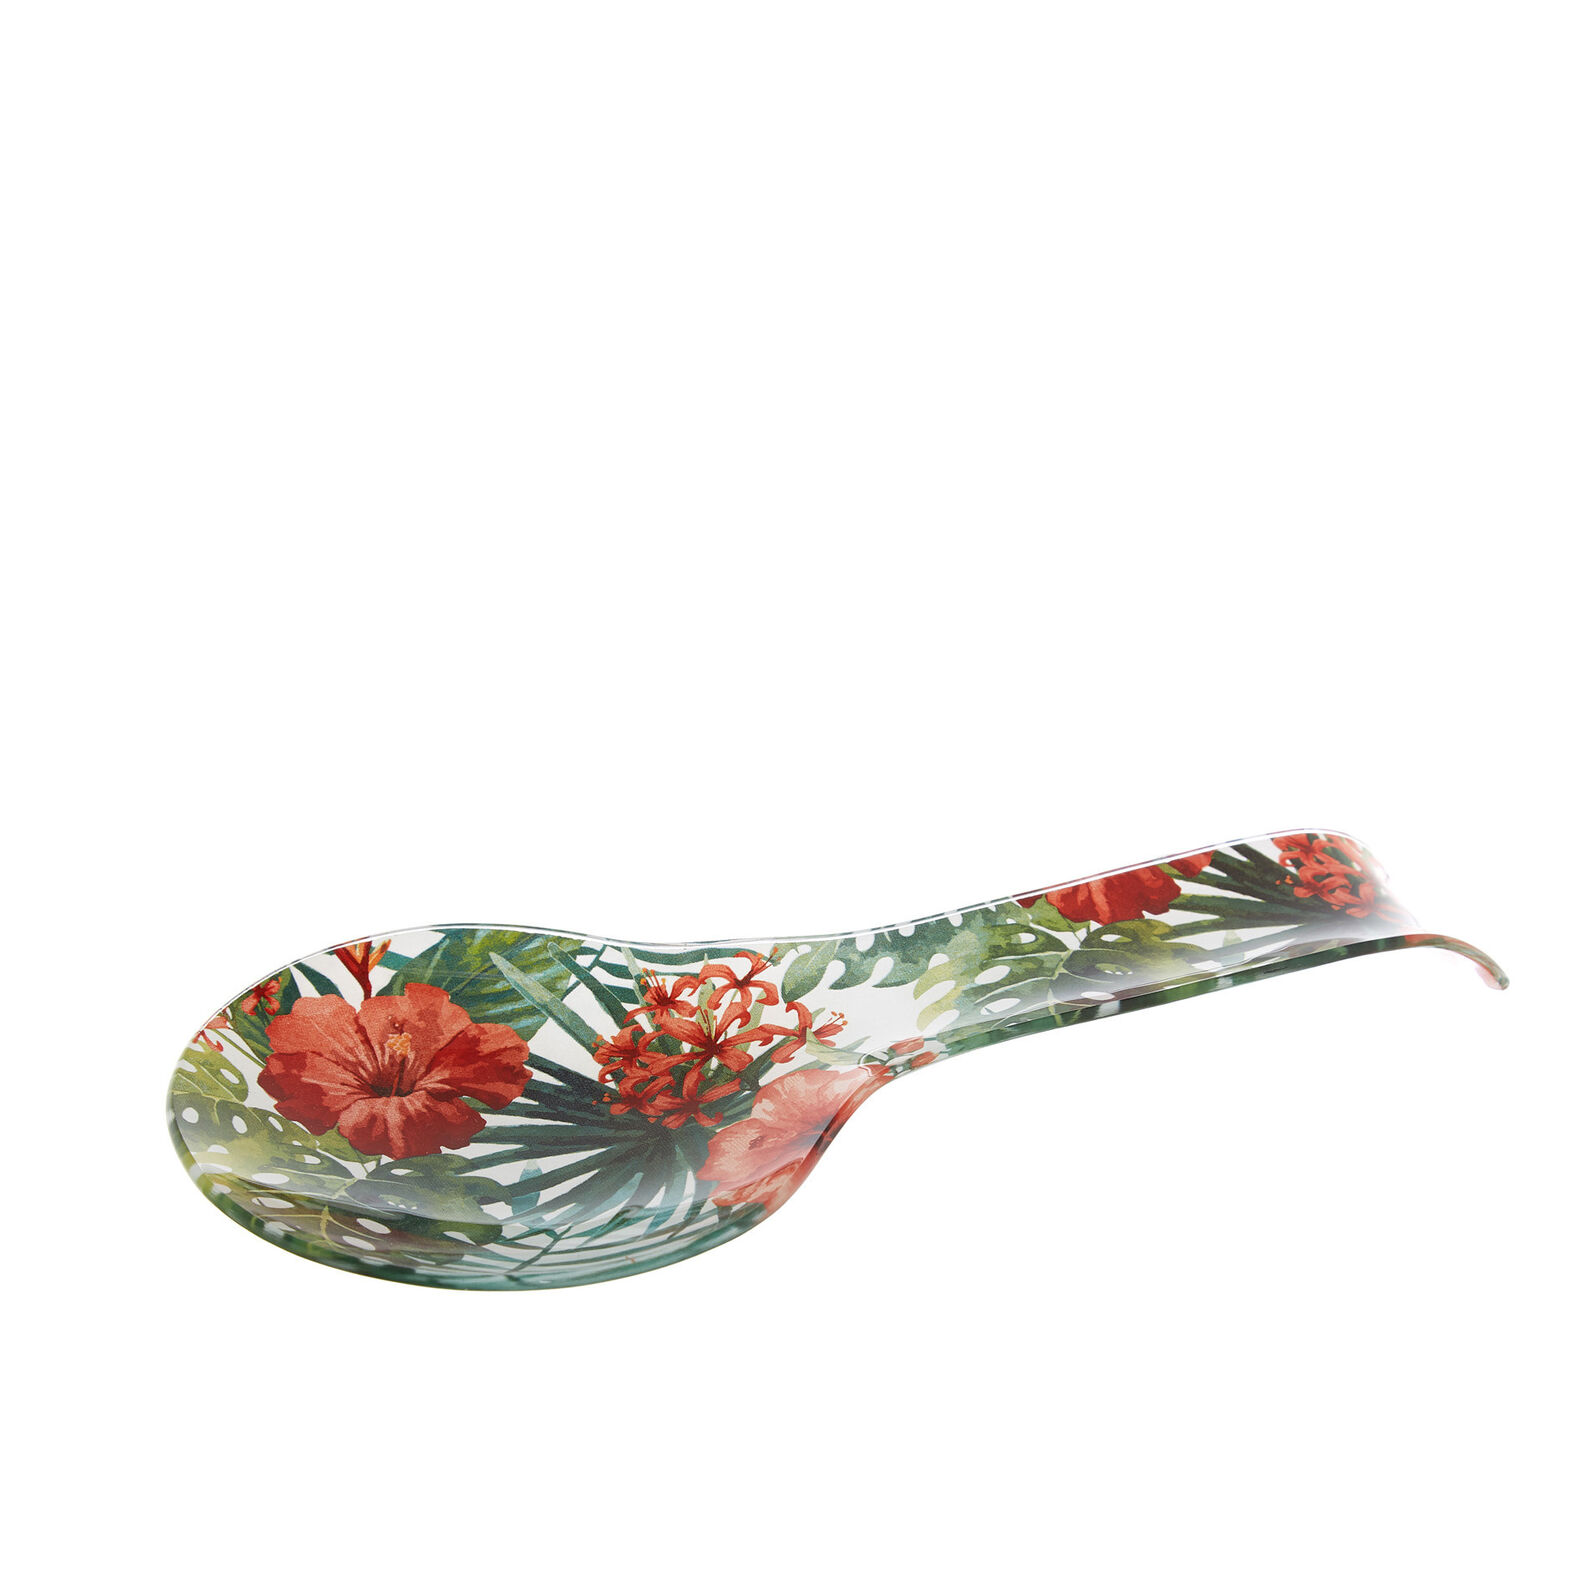 Glass spoon stand with floral motif